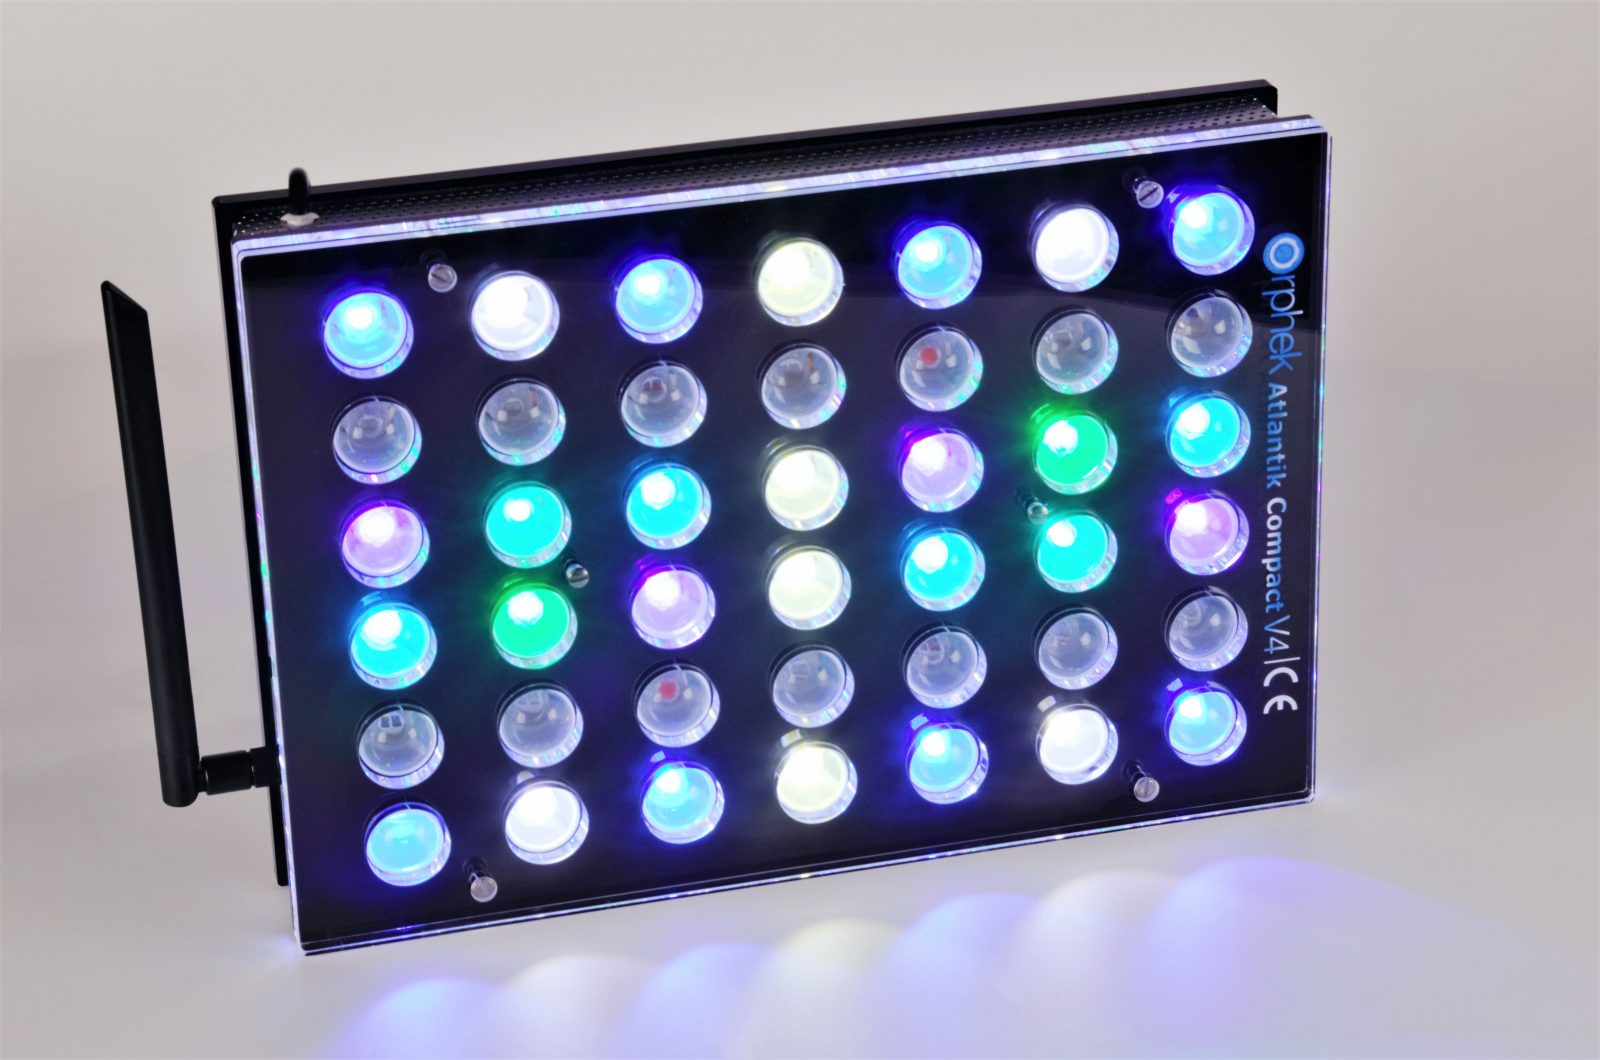 Orphek-Aquarium-LED-Lighting-Atlantik-کمپیکٹ - V4-روشنی -لینلین 1 + 2